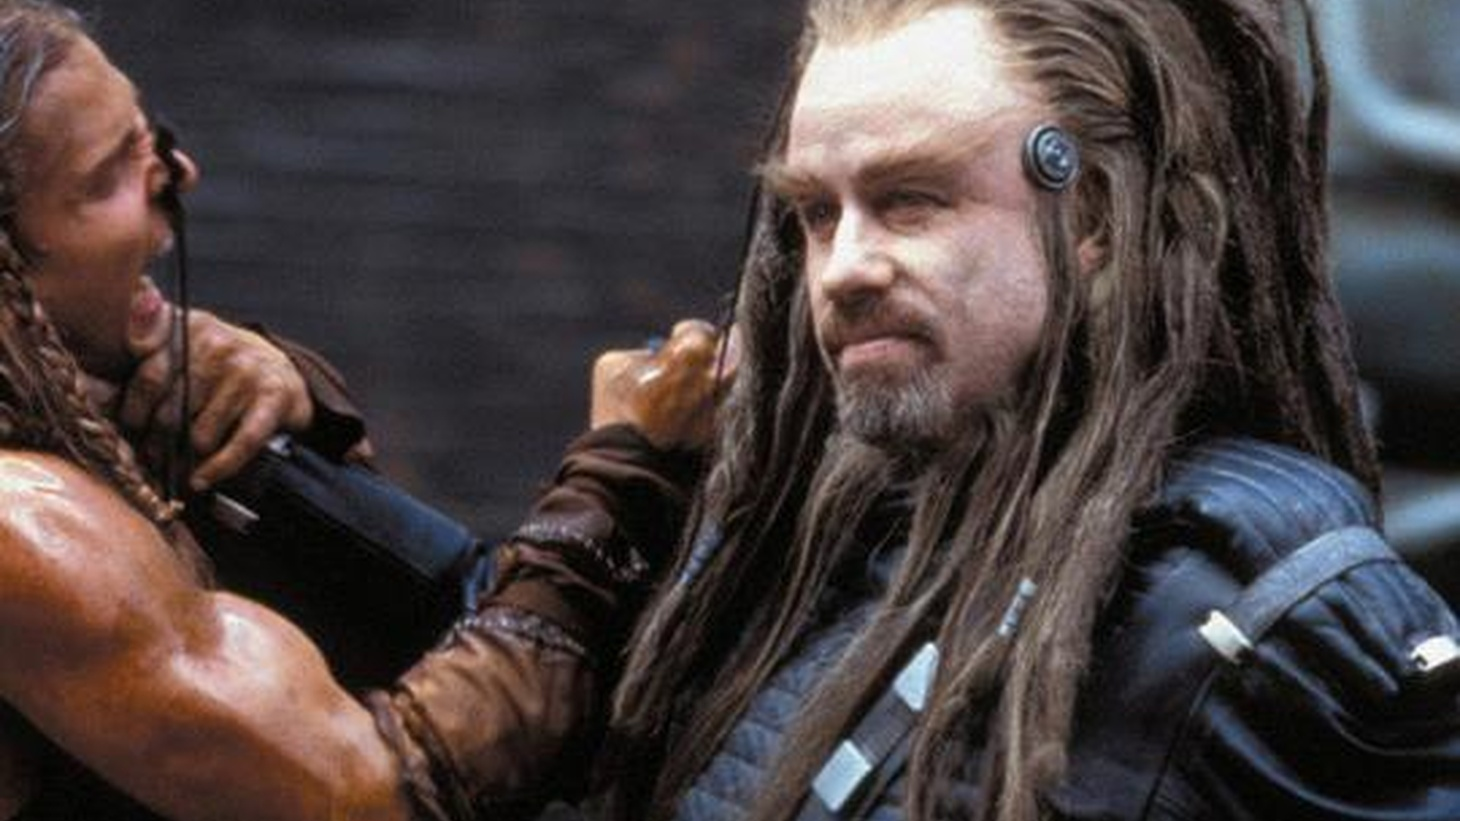 """Battlefield Earth recently won the Razzie for being the """"worst picture of the decade."""" The two credited screenwriters on that film -- J.D. Shapiro and Corey Mandell — say, """"Don't blame us!"""" We find out how their careers survived writing one of the most notorious movies ever."""